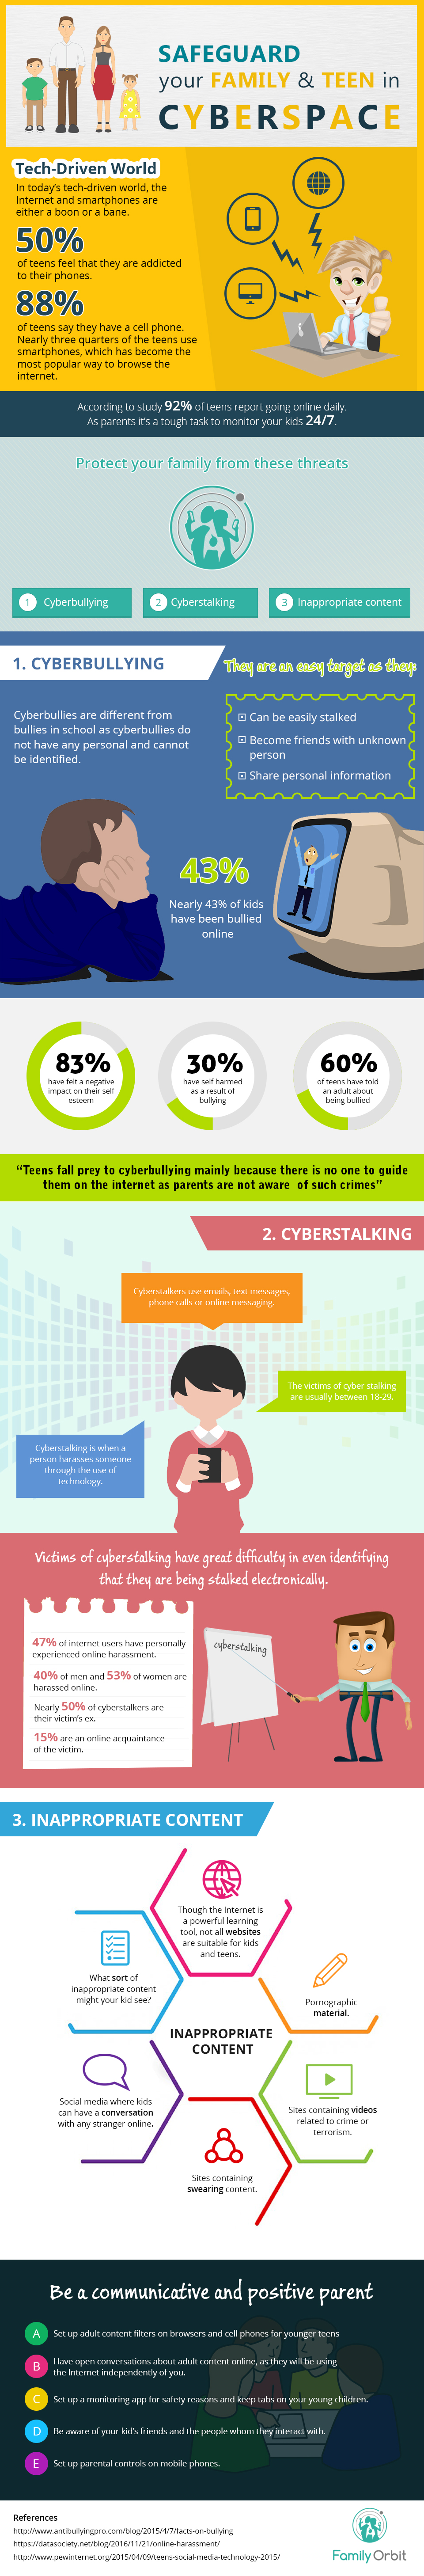 [Infographic] Safety in Cyberspace for Your Family - An Infographic from Family Orbit Blog